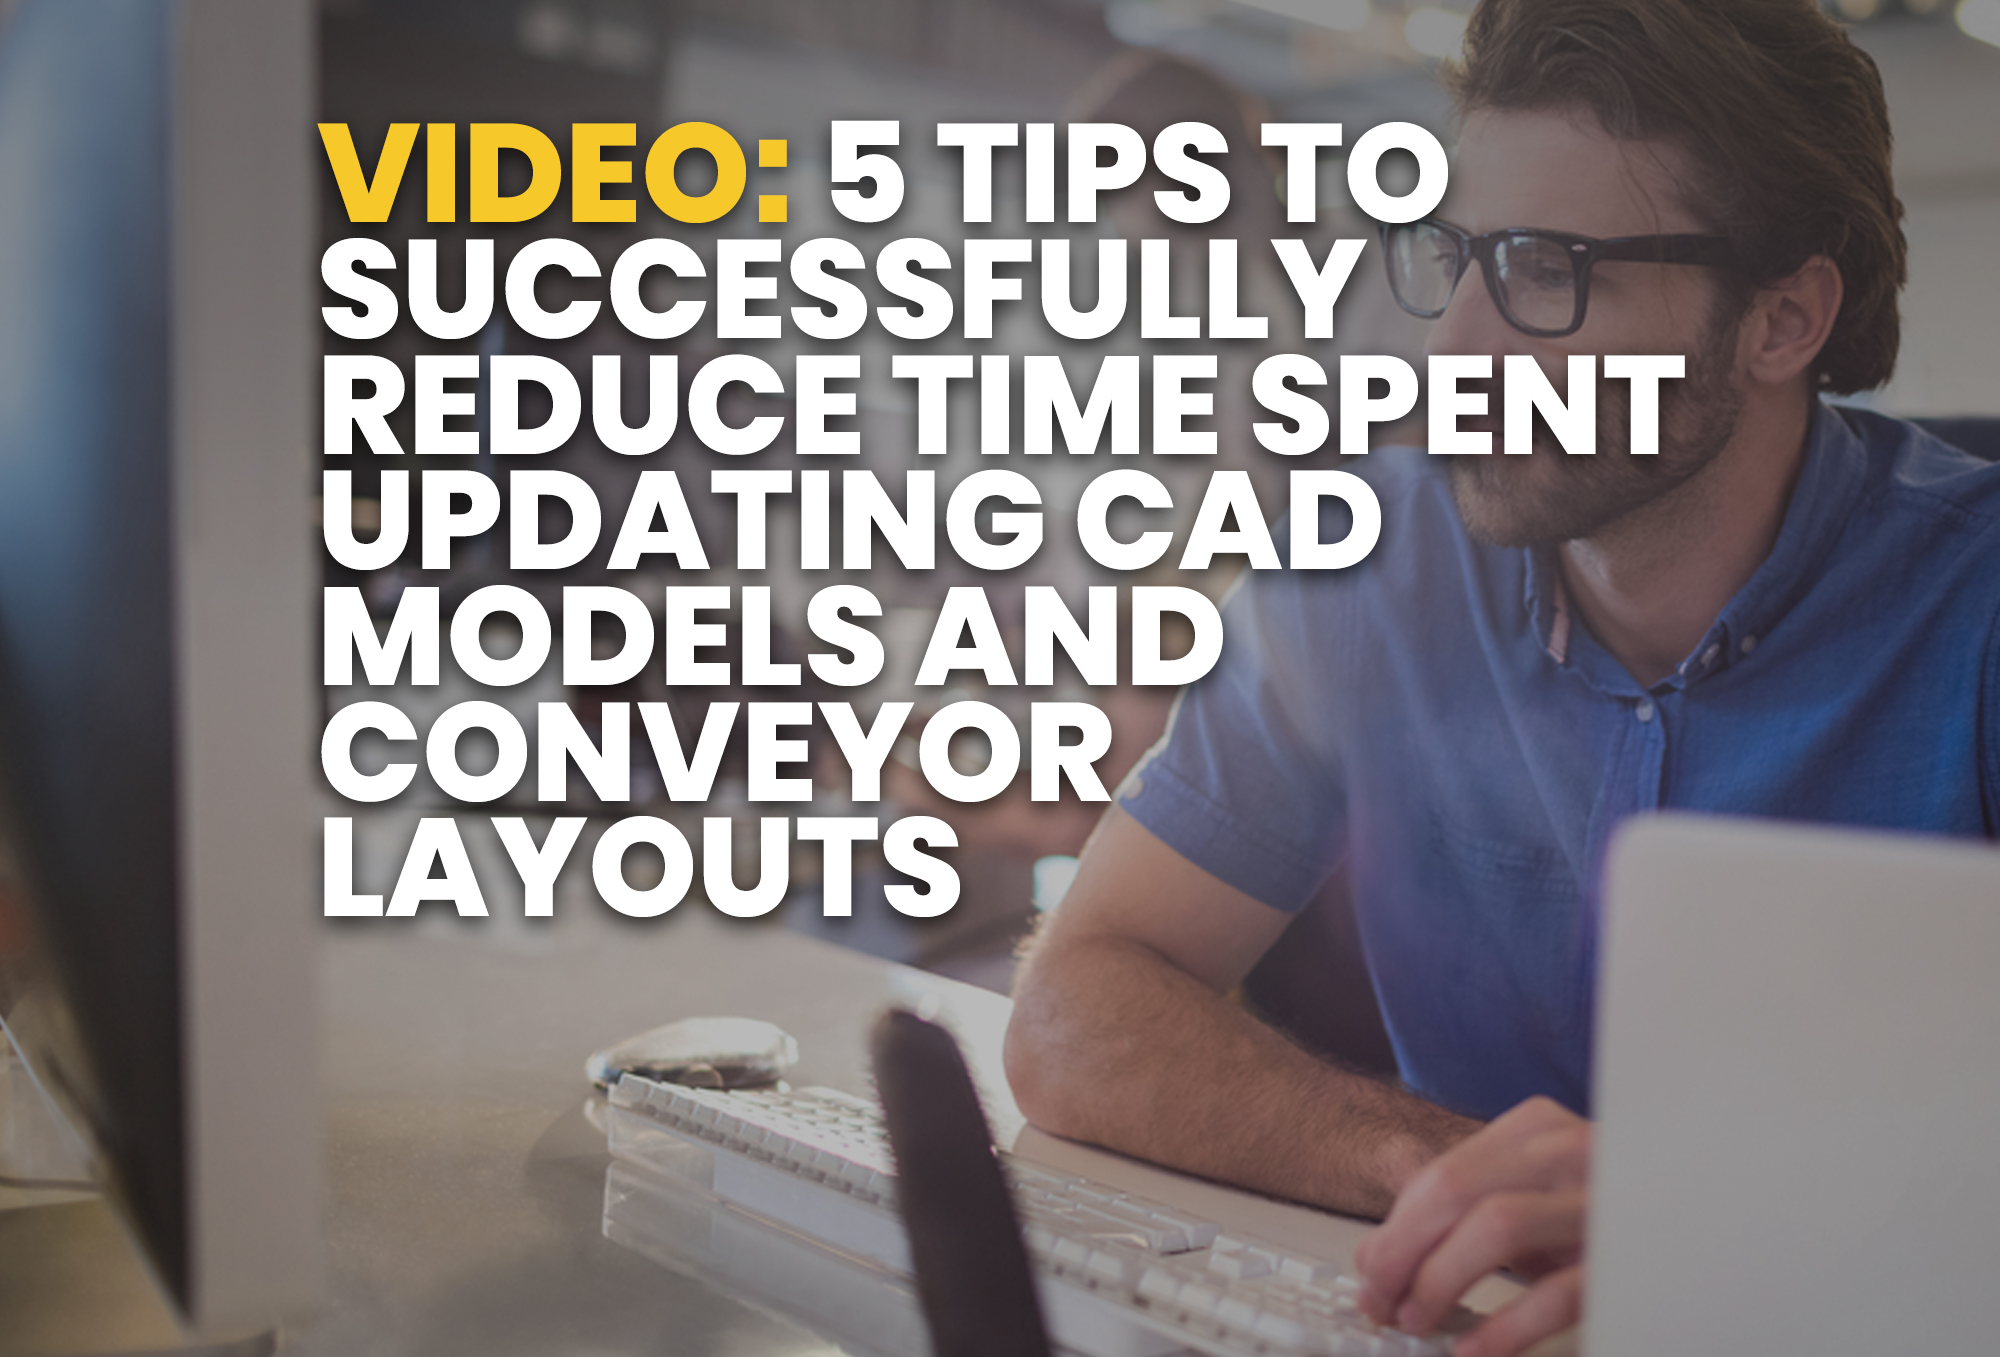 5 Tips To Successfully Reduce Time Spent Updating CAD Models and Conveyor Layouts - resource